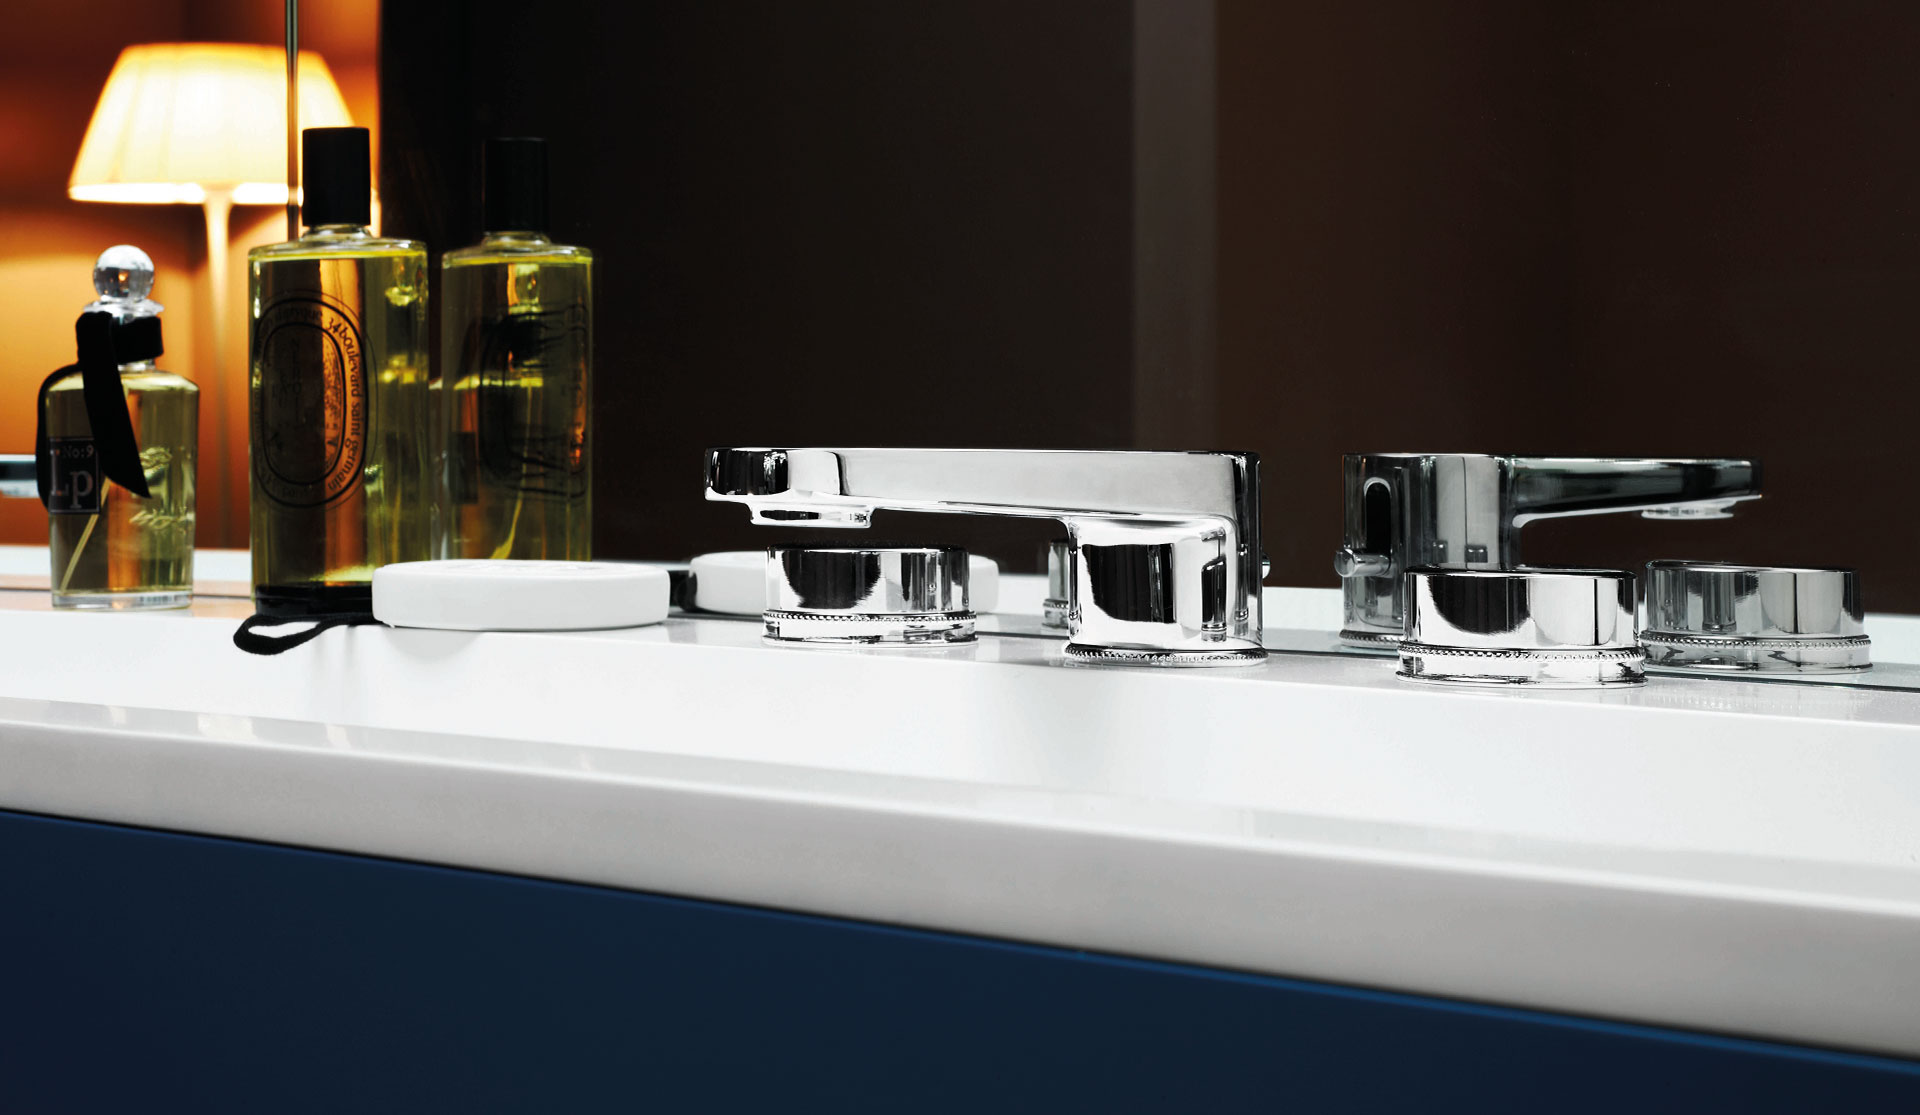 Savoy taps and fittings collection for Zucchetti, 2011